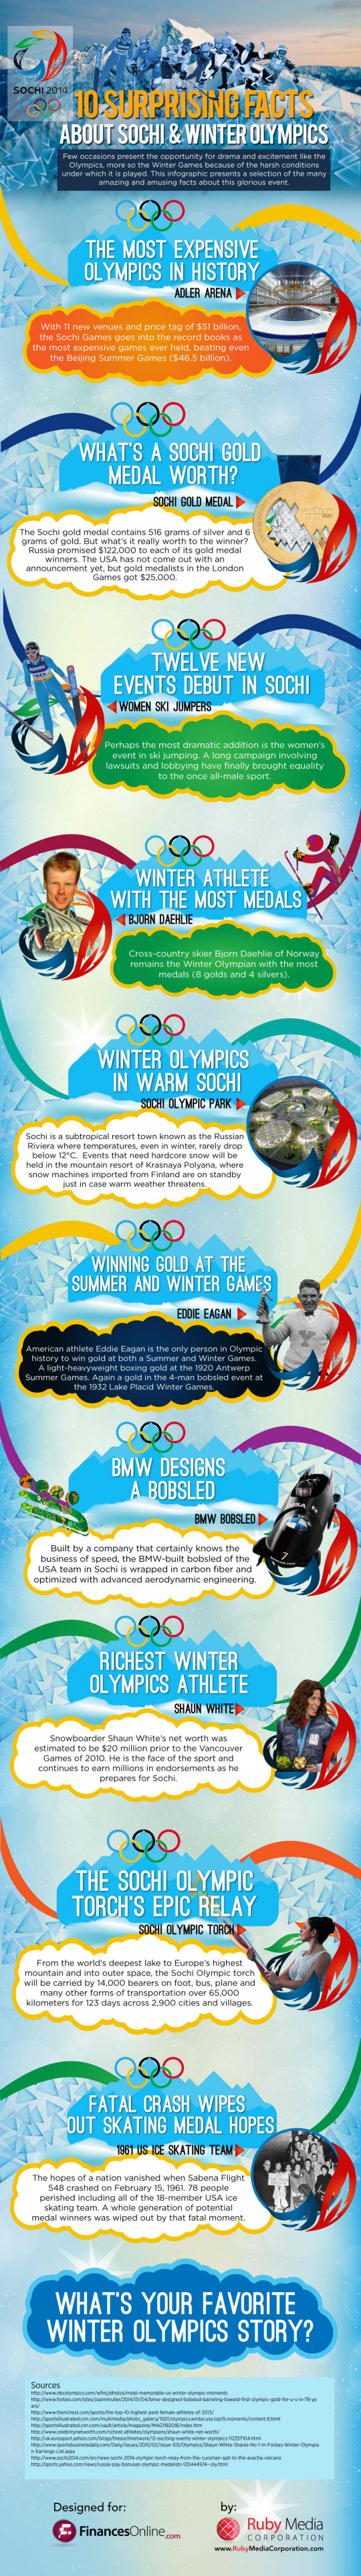 10 Surprising Facts About Sochi & Winter Olympics